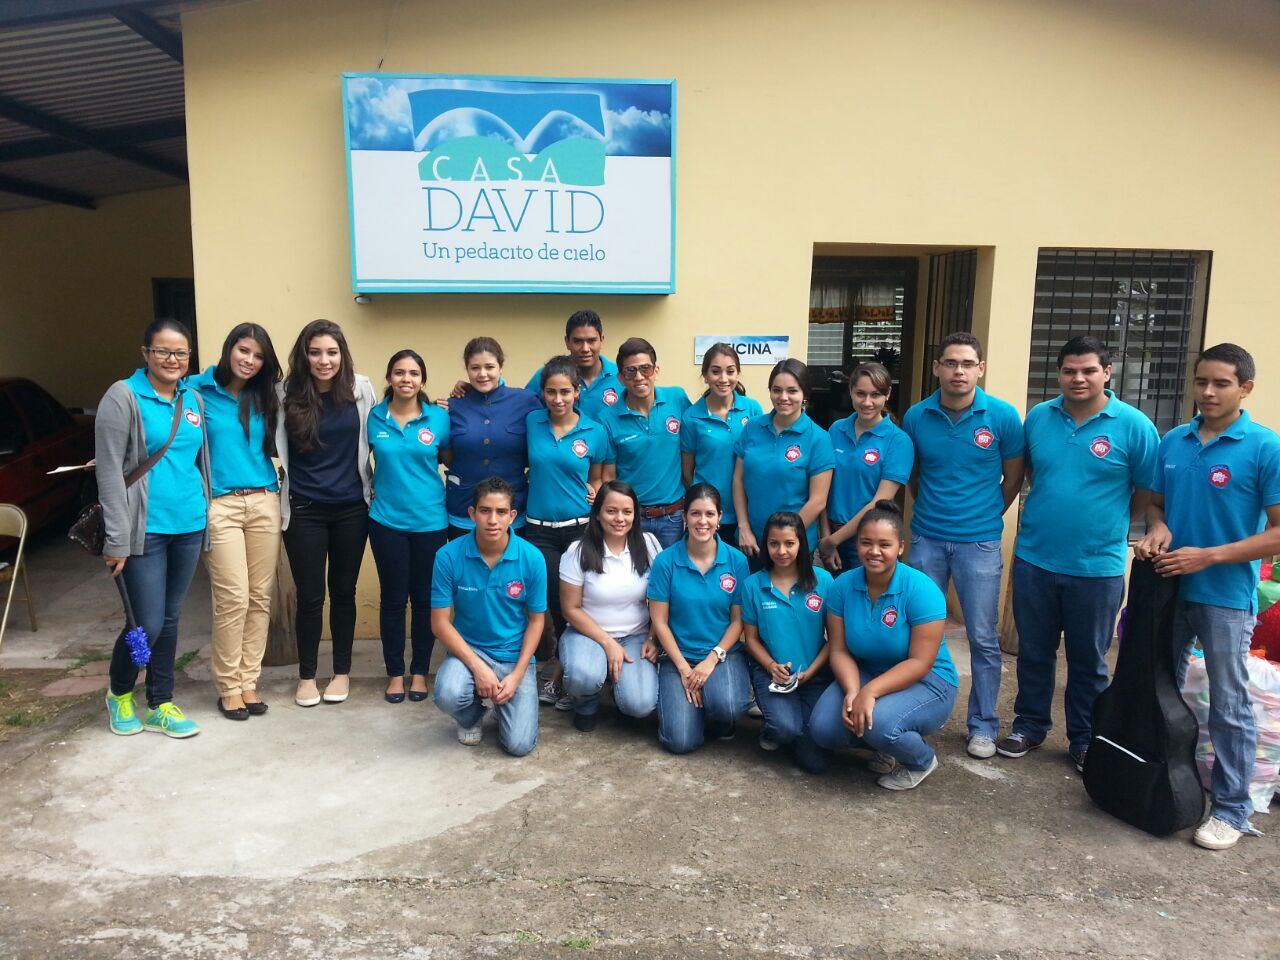 Friends of Casa David